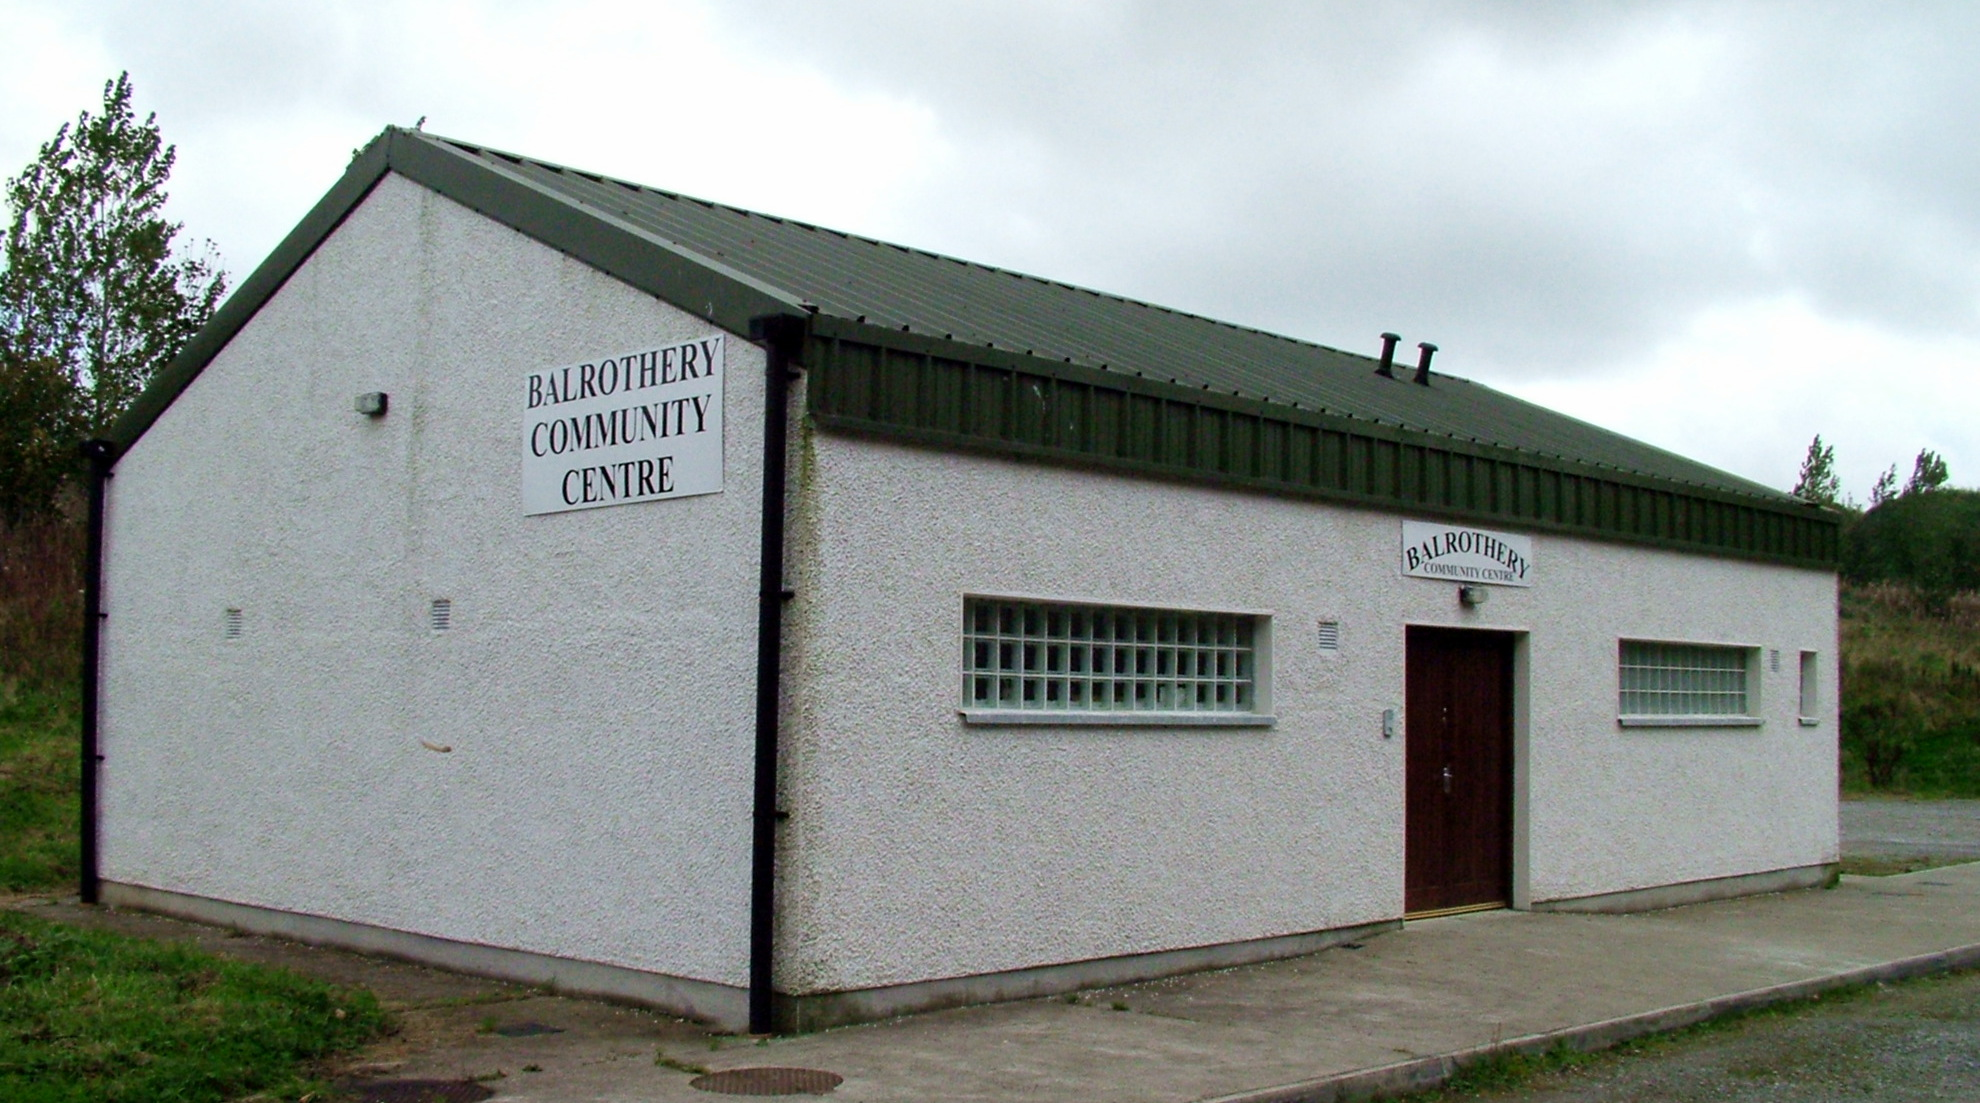 Balrothery Community Centre 2004